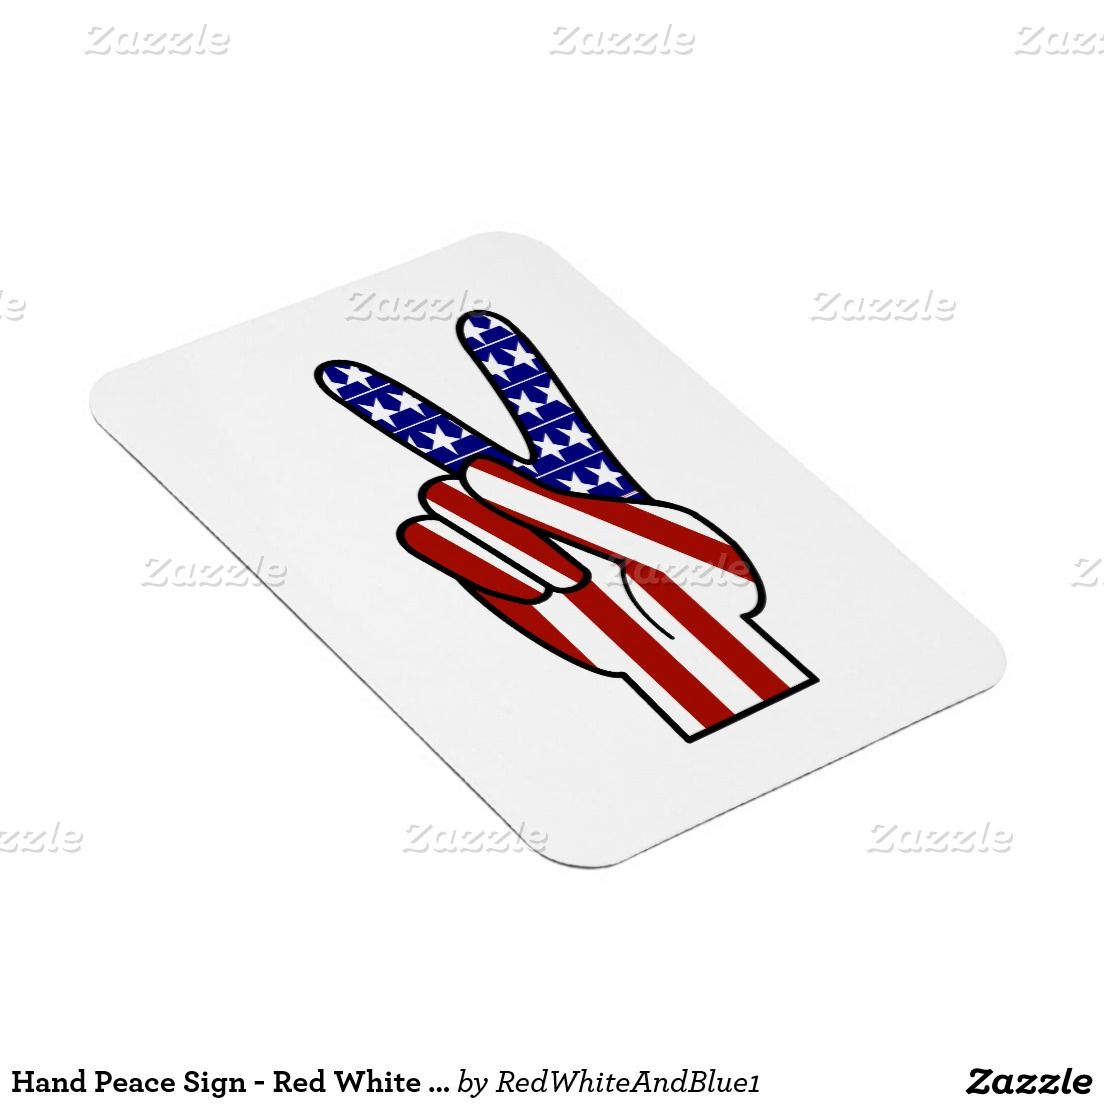 Hand Peace Sign - Red White & Blue Rectangular Photo Magnet #RedwhiteAndBlue1  #Gravityx9 #Zazzle